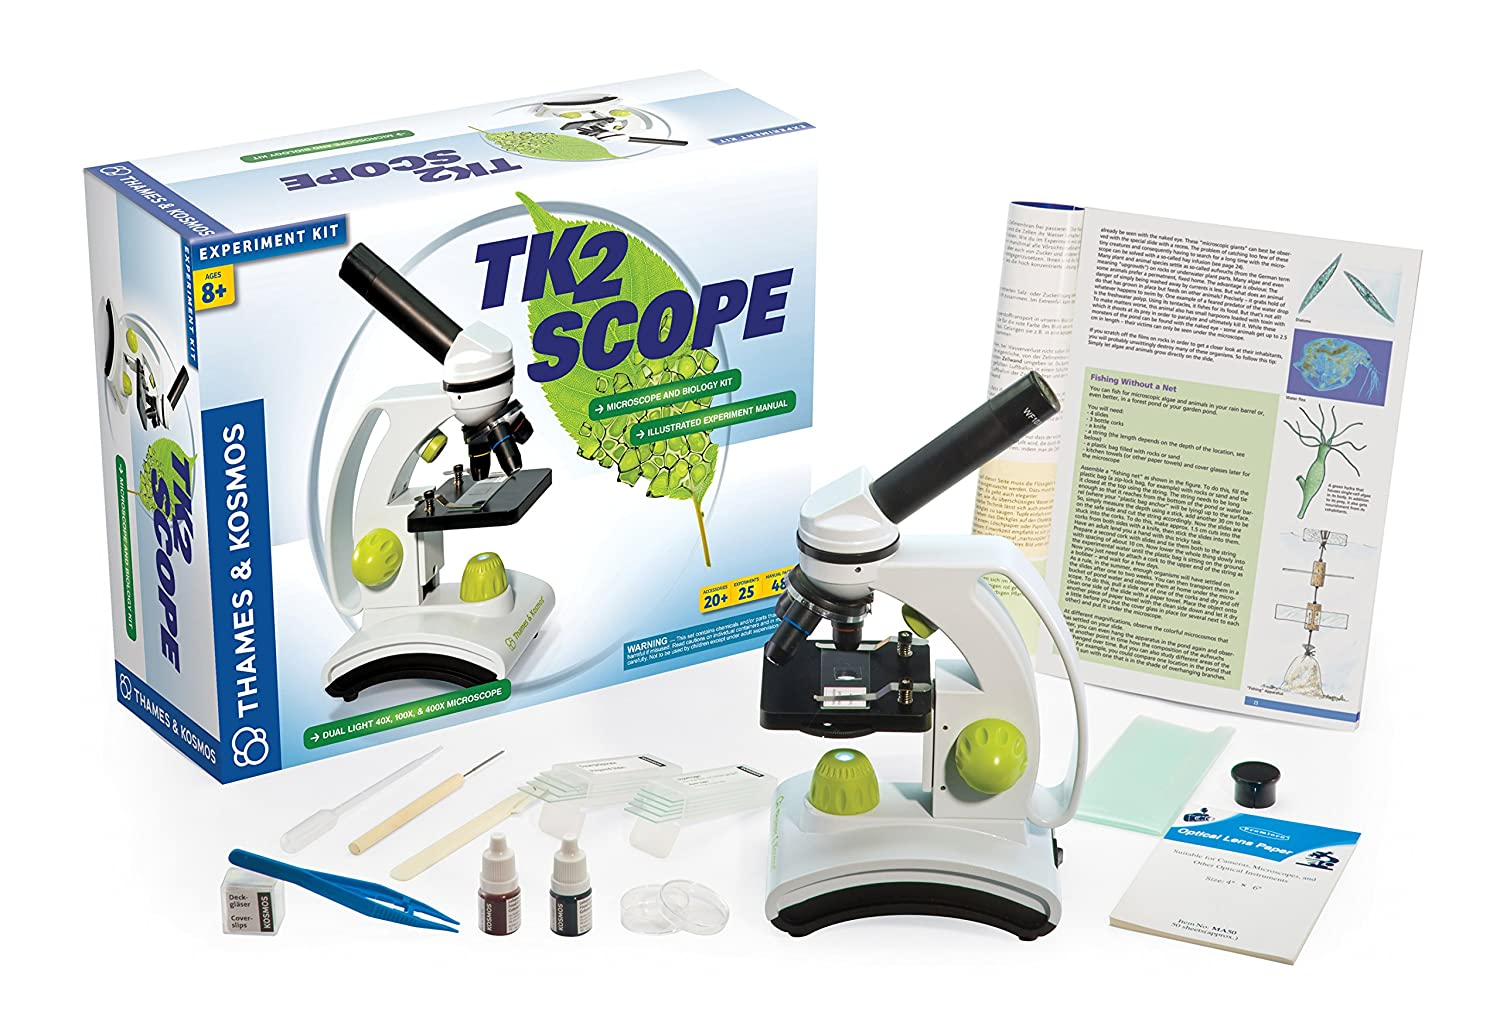 Top 10 Best Microscope for Kids Reviews in 2021 20